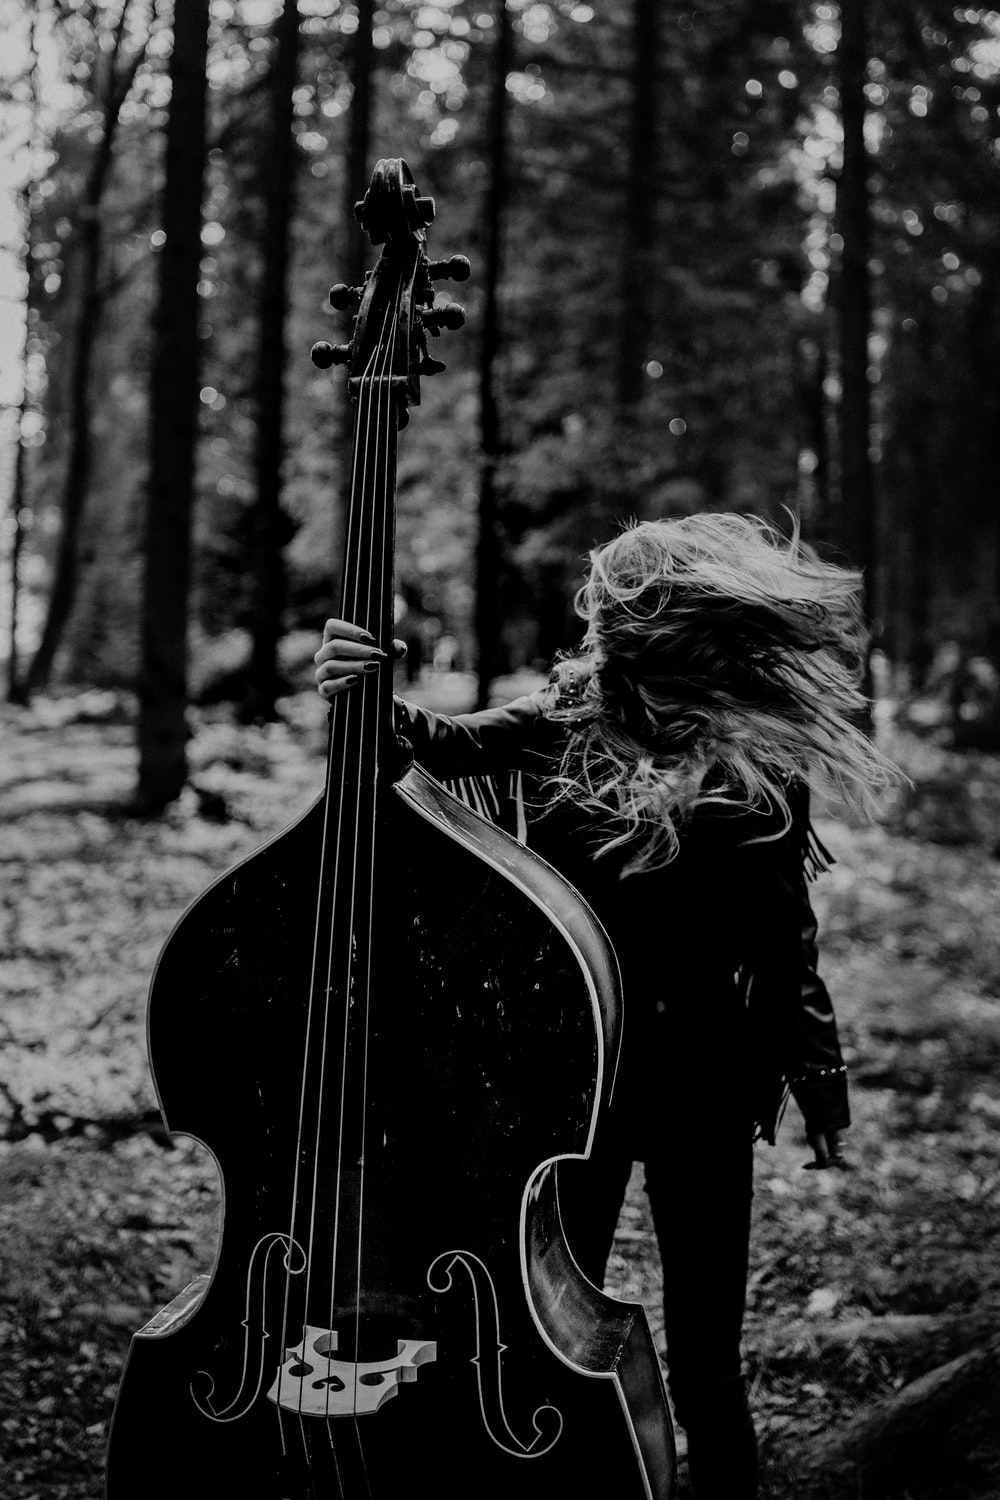 woman in black long sleeve dress playing guitar in grayscale photography